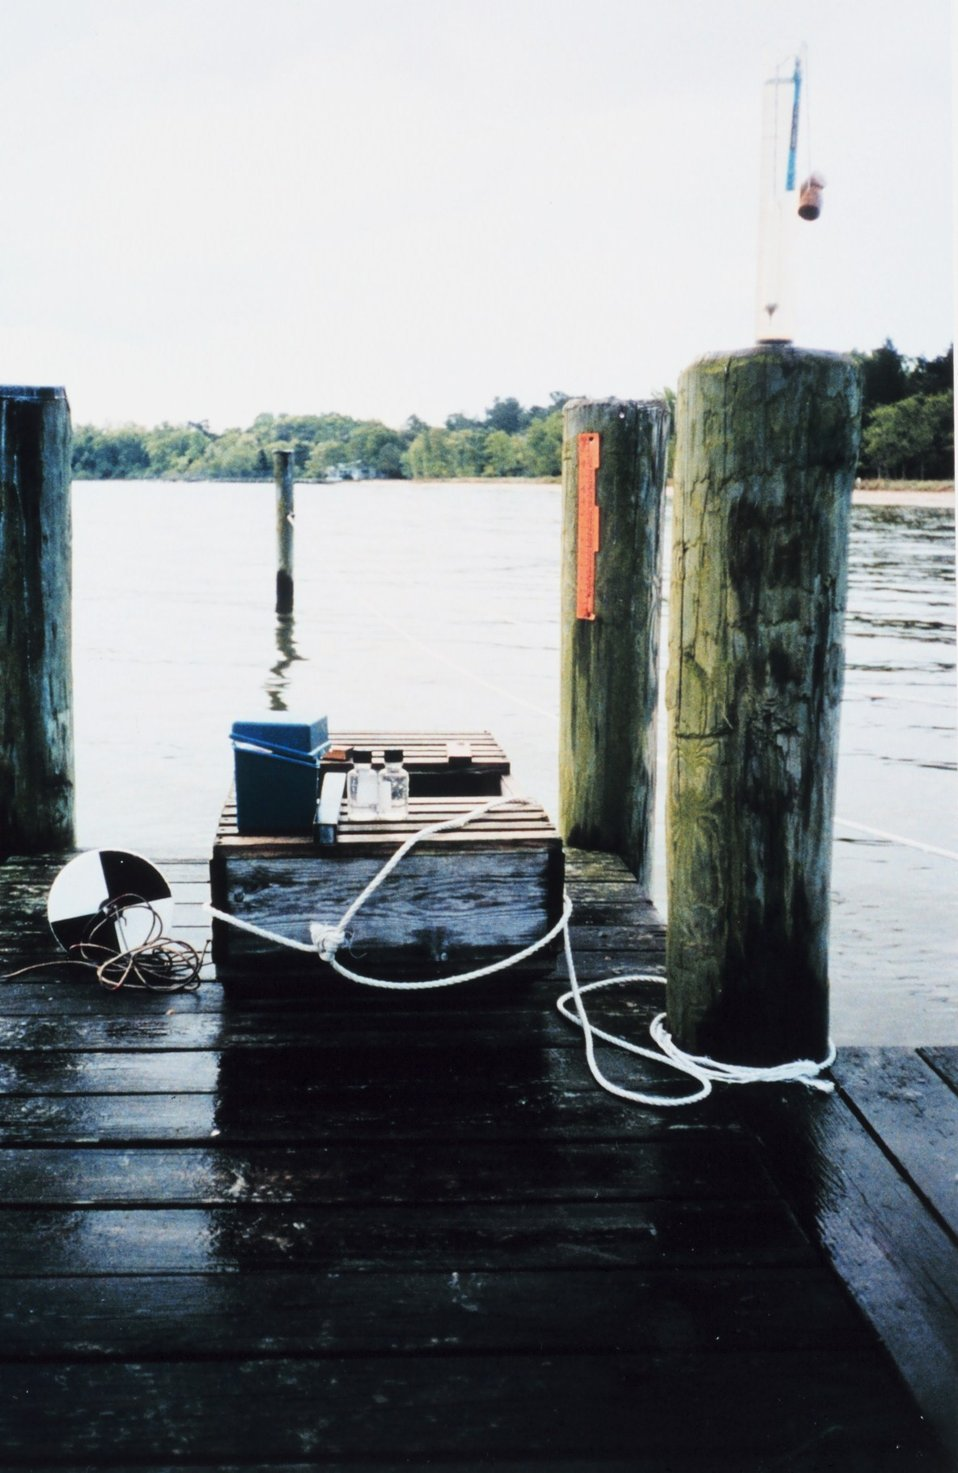 Water quality testing equipment and a 'live box' for crabs.